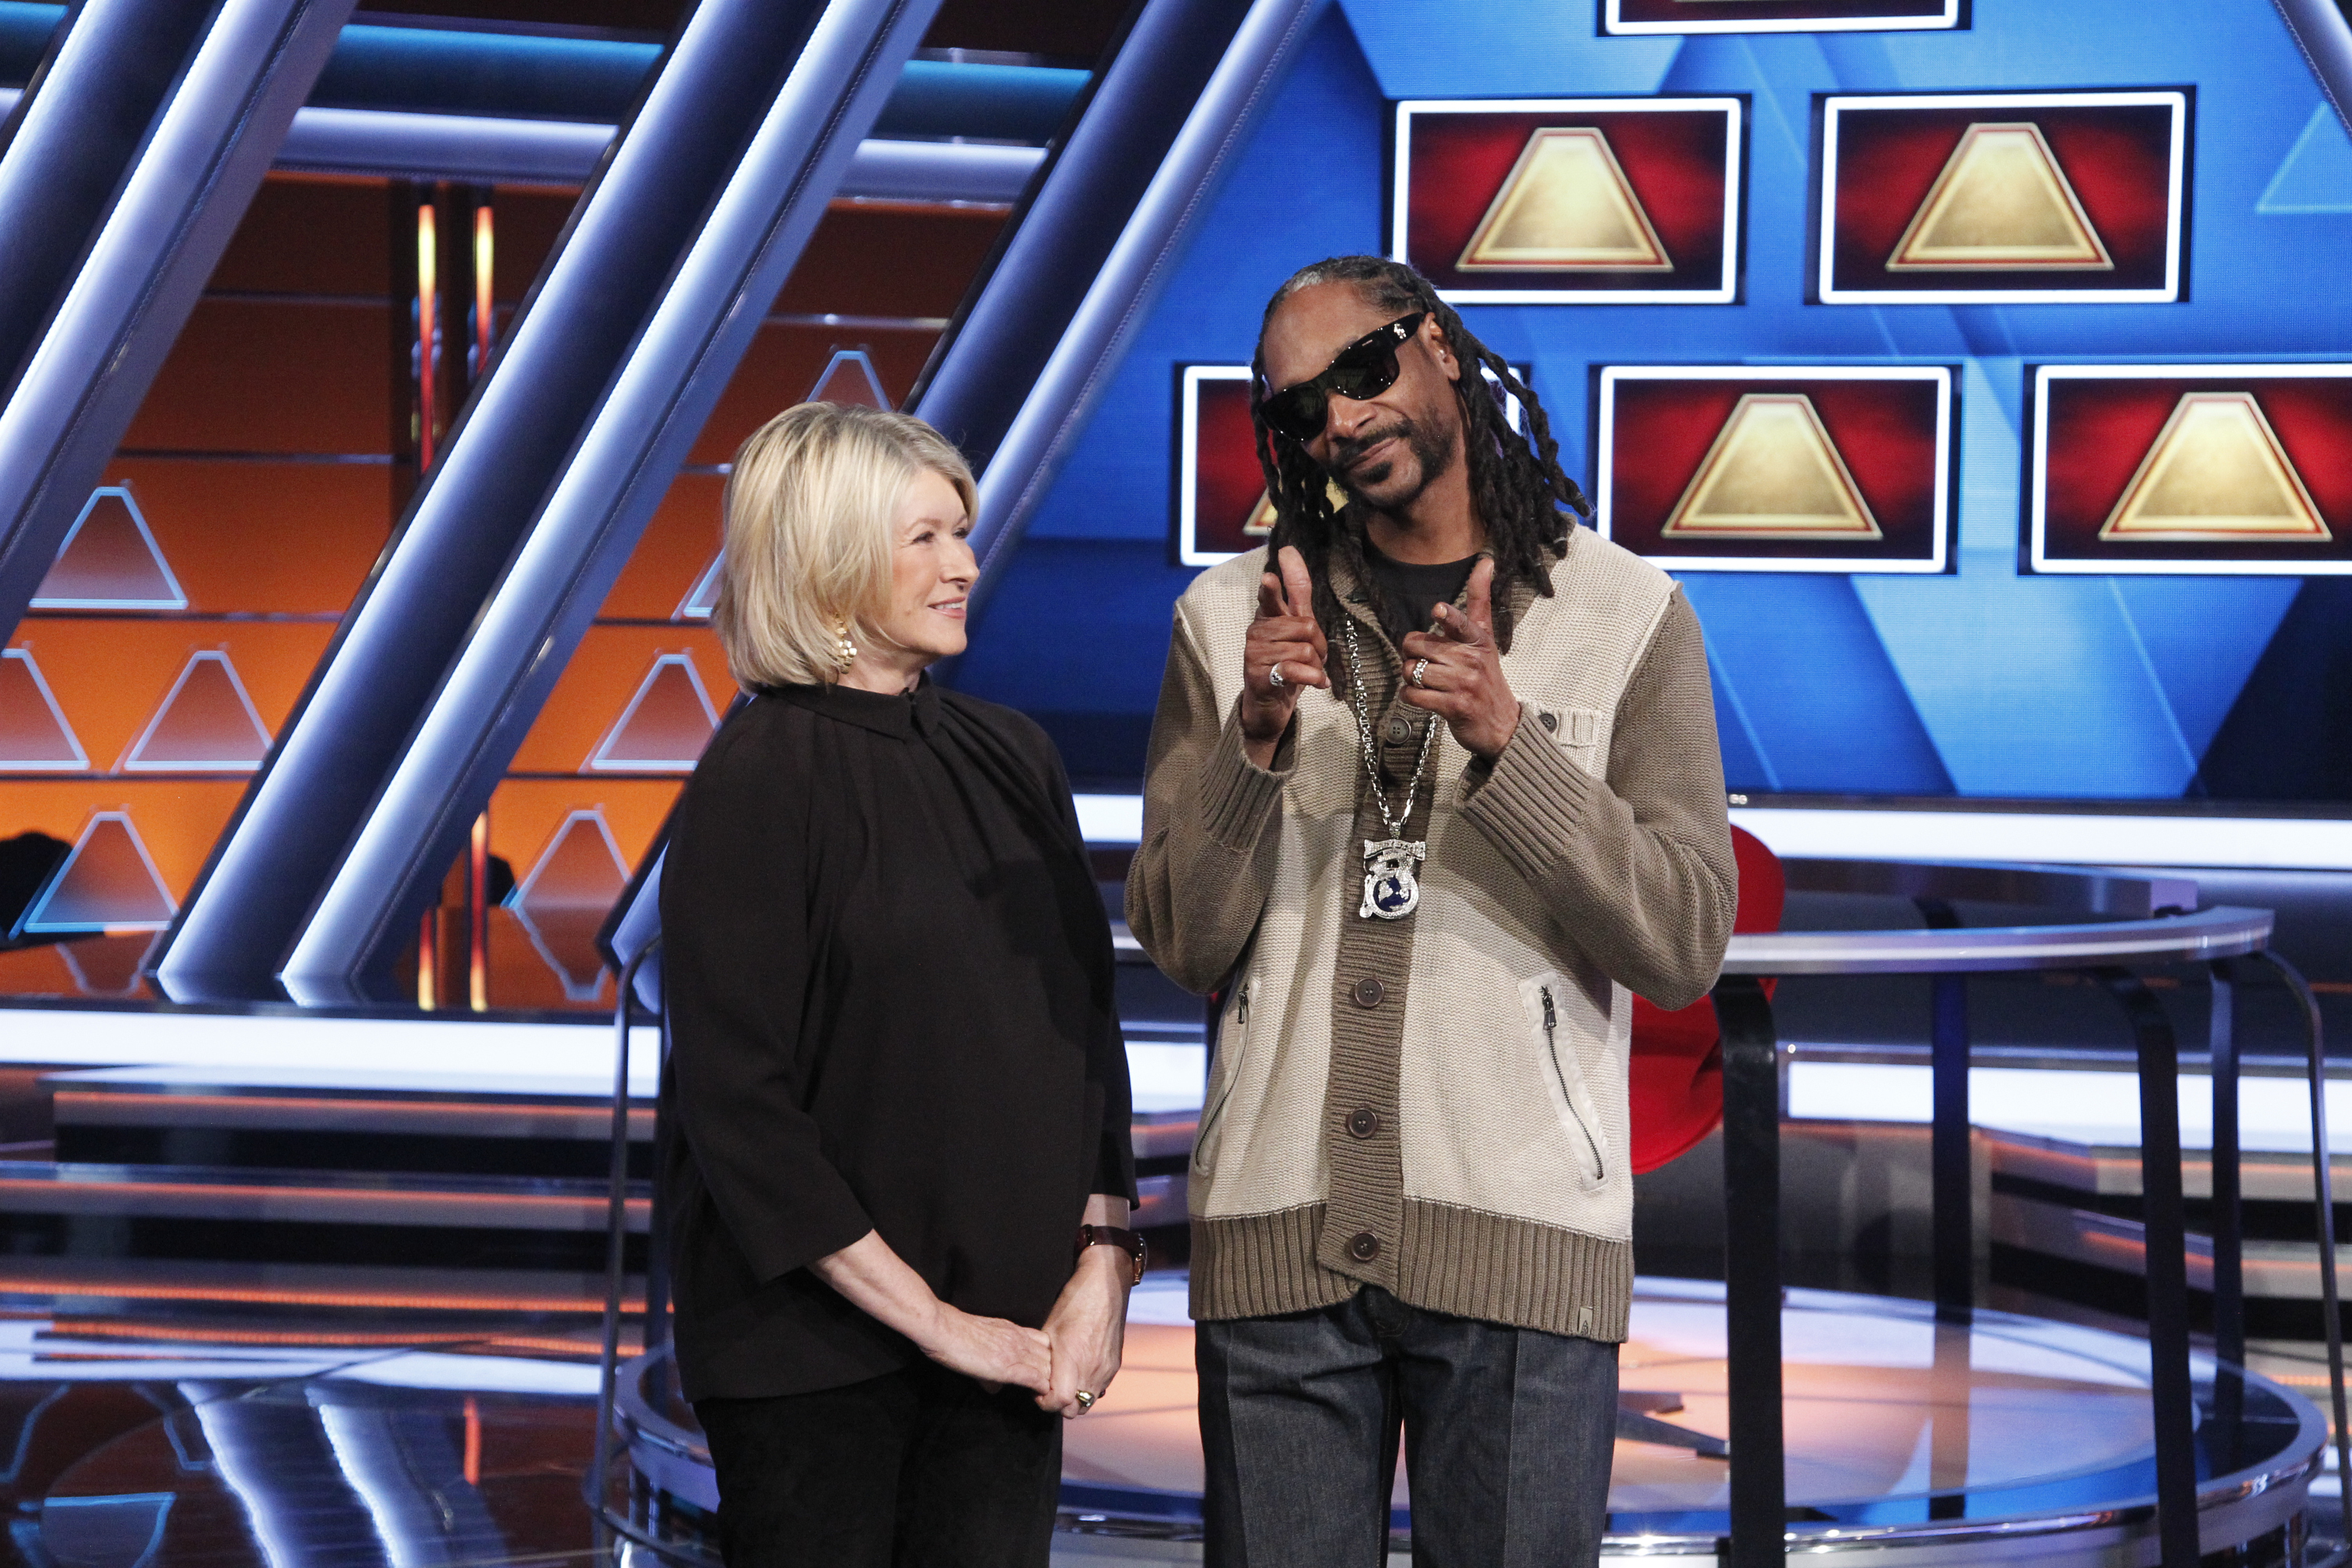 So, Martha Stewart and Snoop Dogg are going to have a TV show together and that's amazing